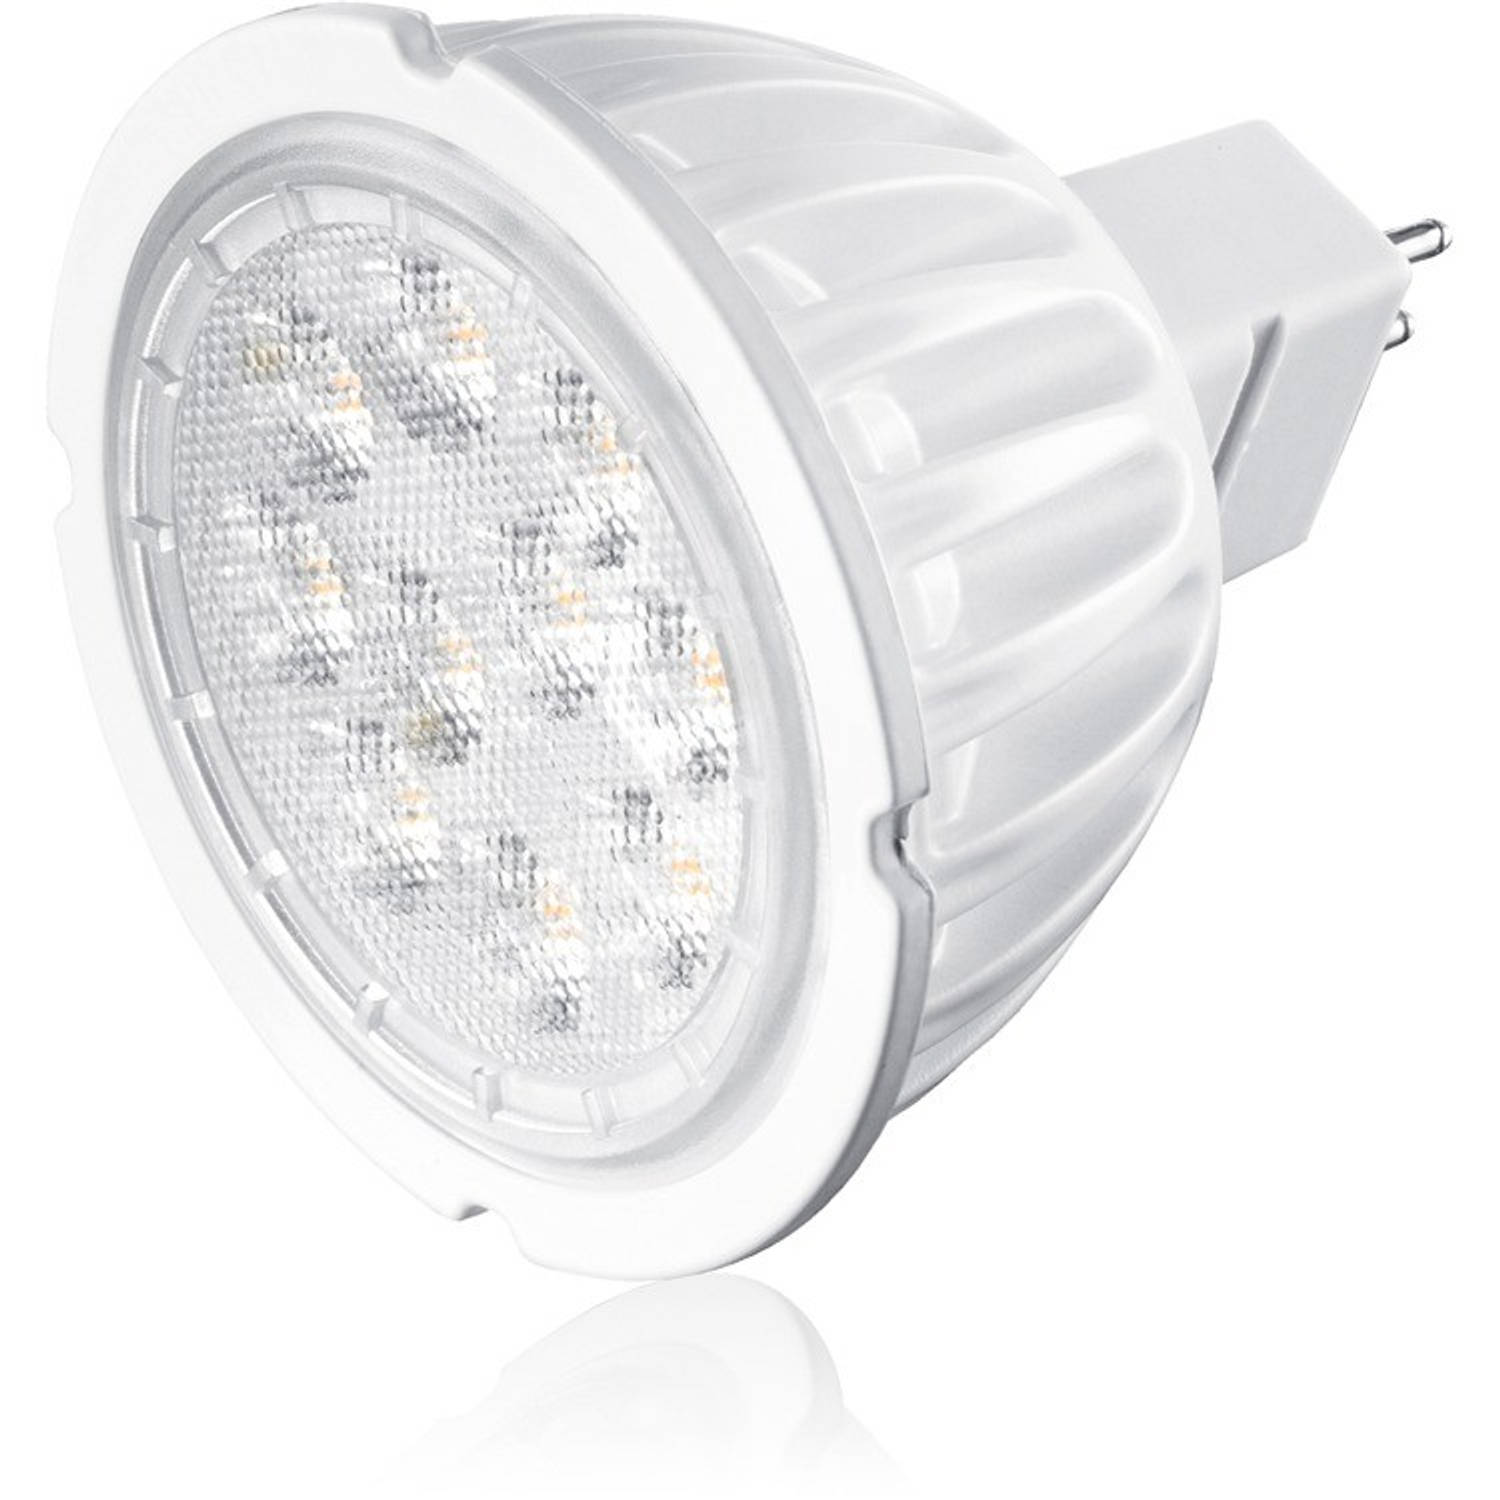 LED Spot MR16 GU5.3 3,2 W